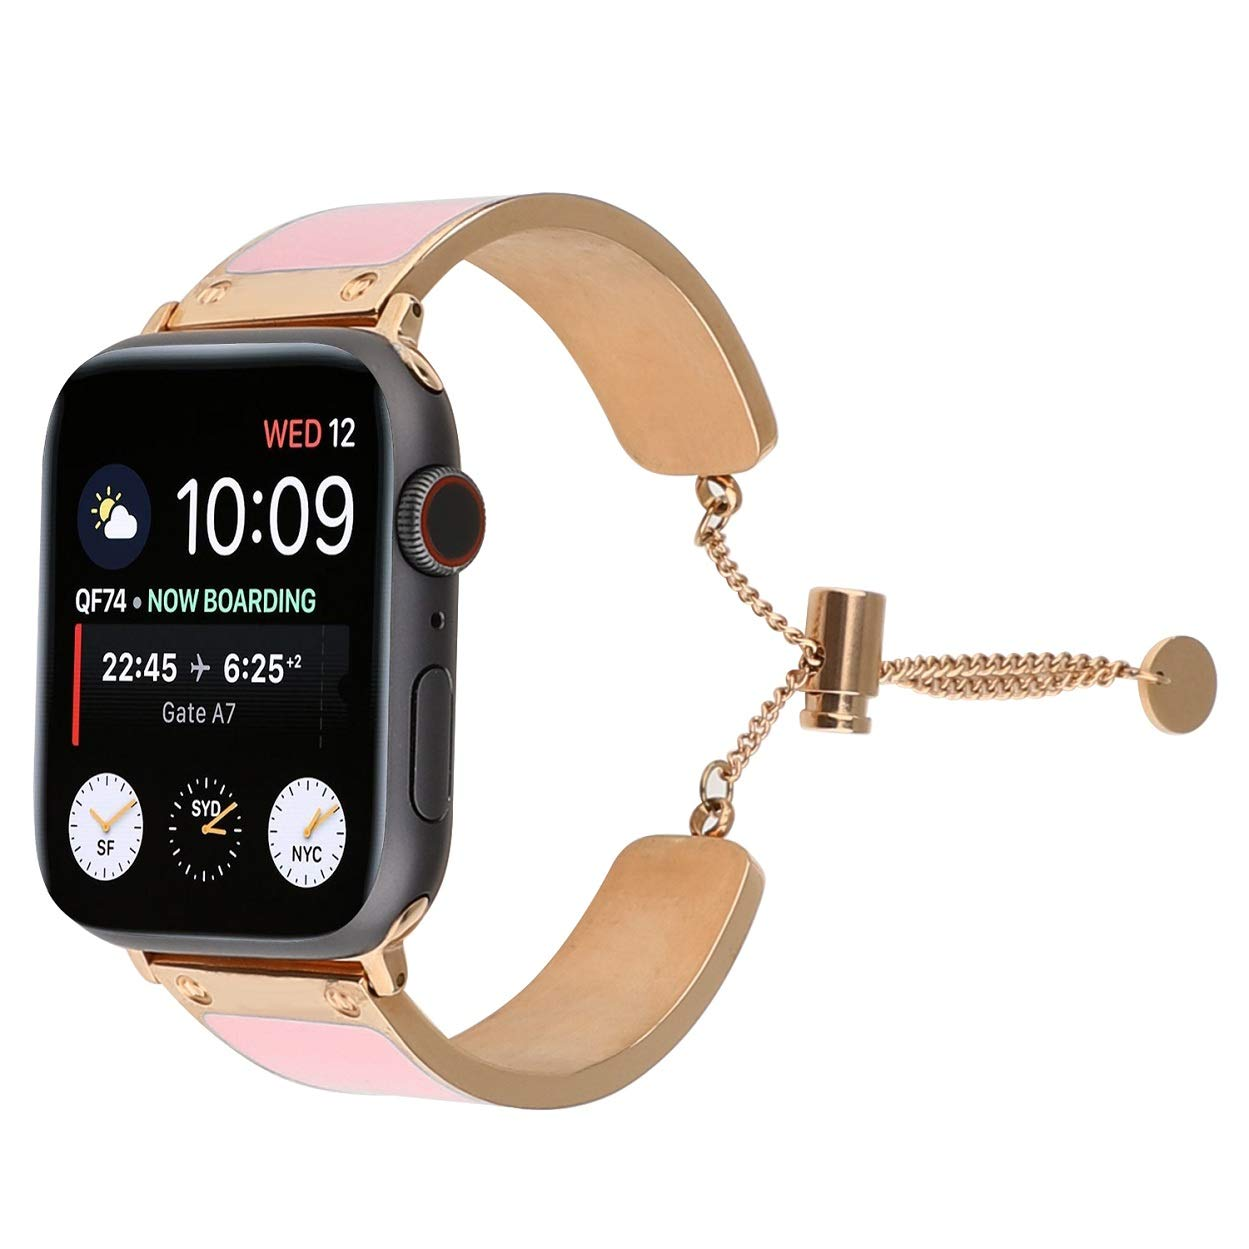 Juzzhou Compatible with Watch Band Apple Watch iWatch Series 1 2 3 4 Wriststrap Wrist Strap Guard Replacement Wristband Bracelet with Metal Adapter Buckle for Woman Girls Lady Boy Pink 38mm 40mm by Juzzhou